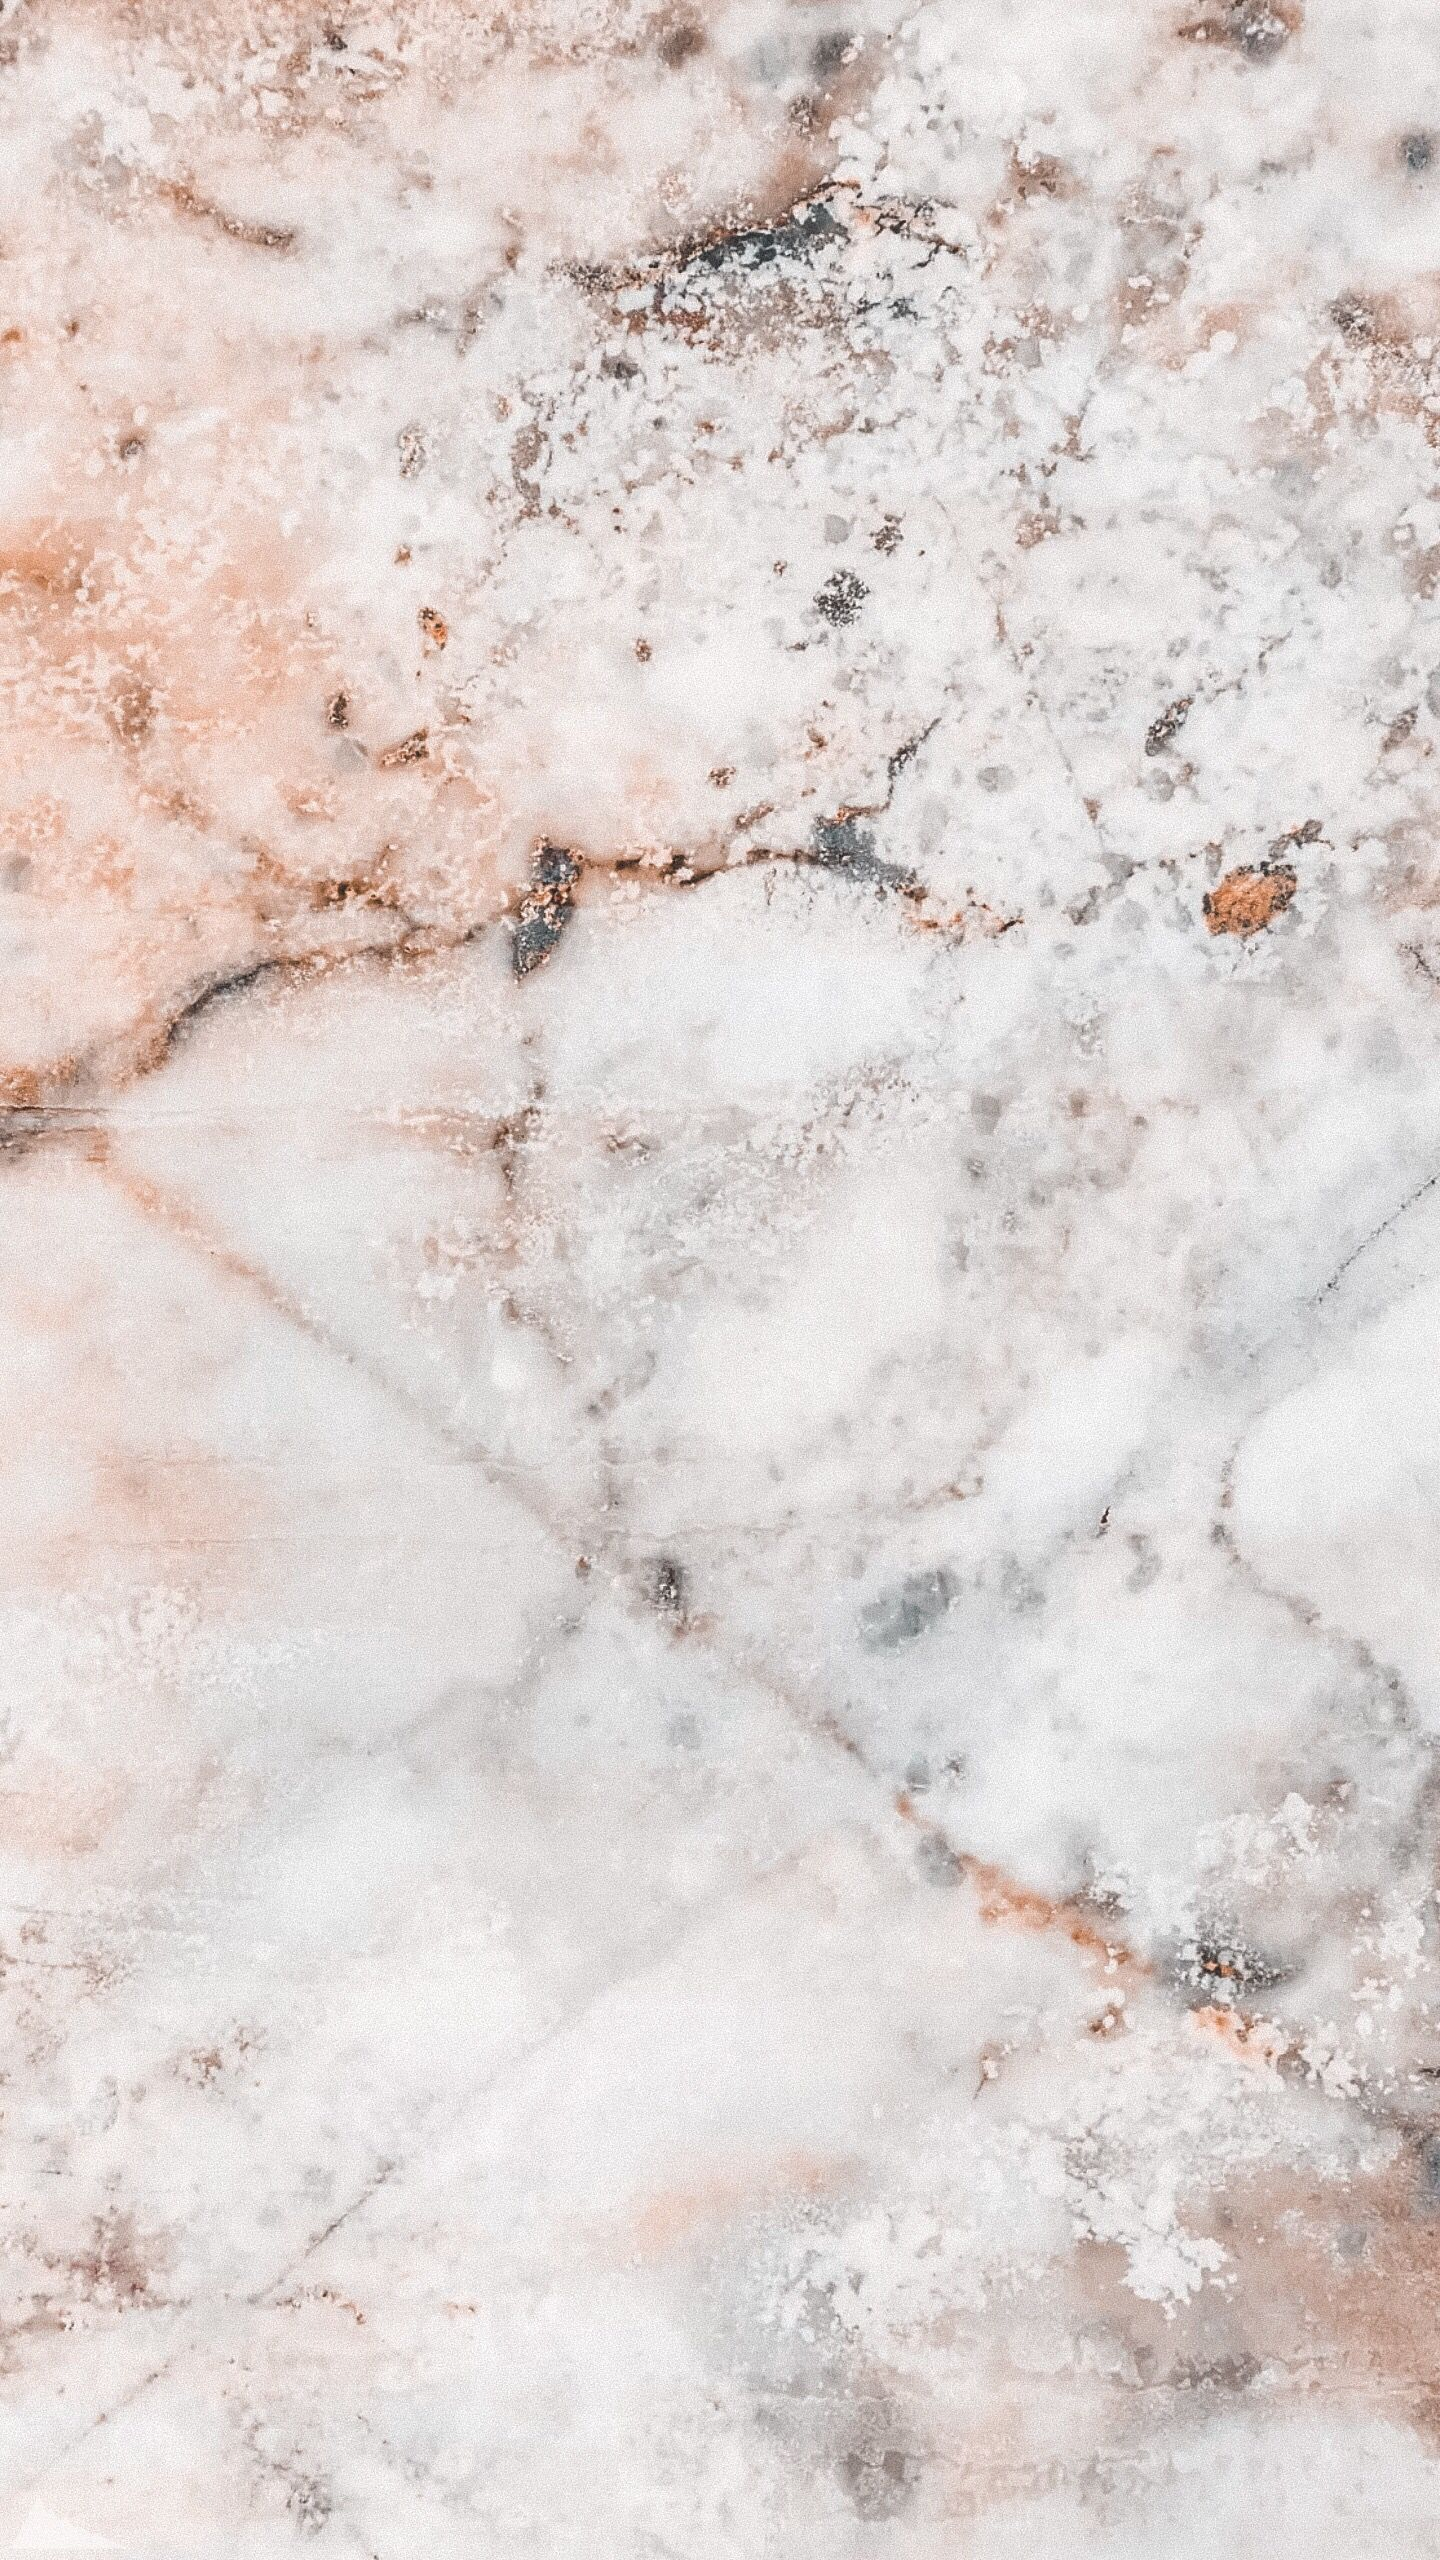 Marble Wallpaper For Phone In 2020 Marble Wallpaper Phone Marble Wallpaper Phone Wallpaper